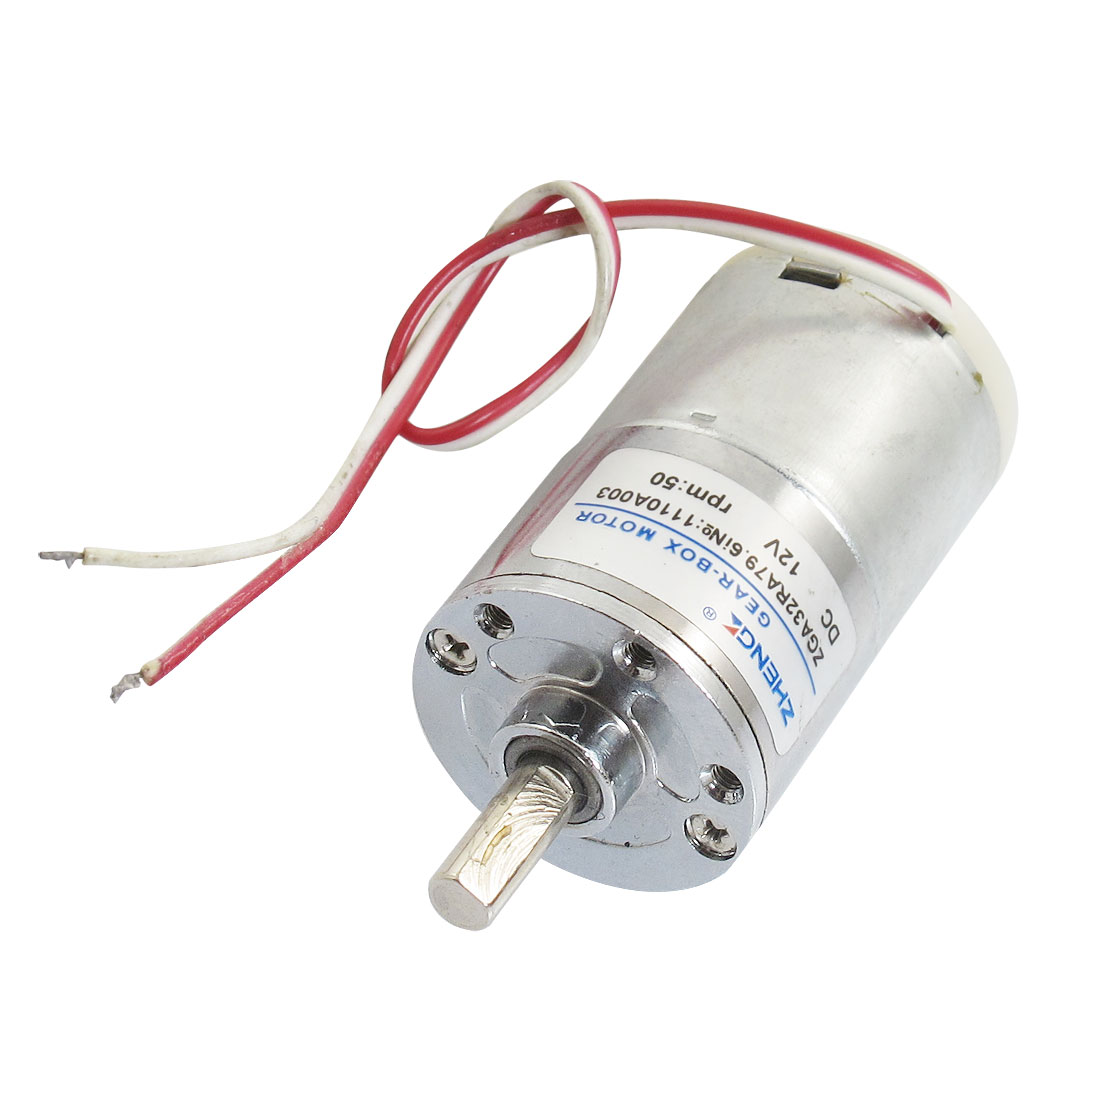 50r/min DC 12V 32mm Boby Dia 2 Wire Speed Reducing Geared Motor